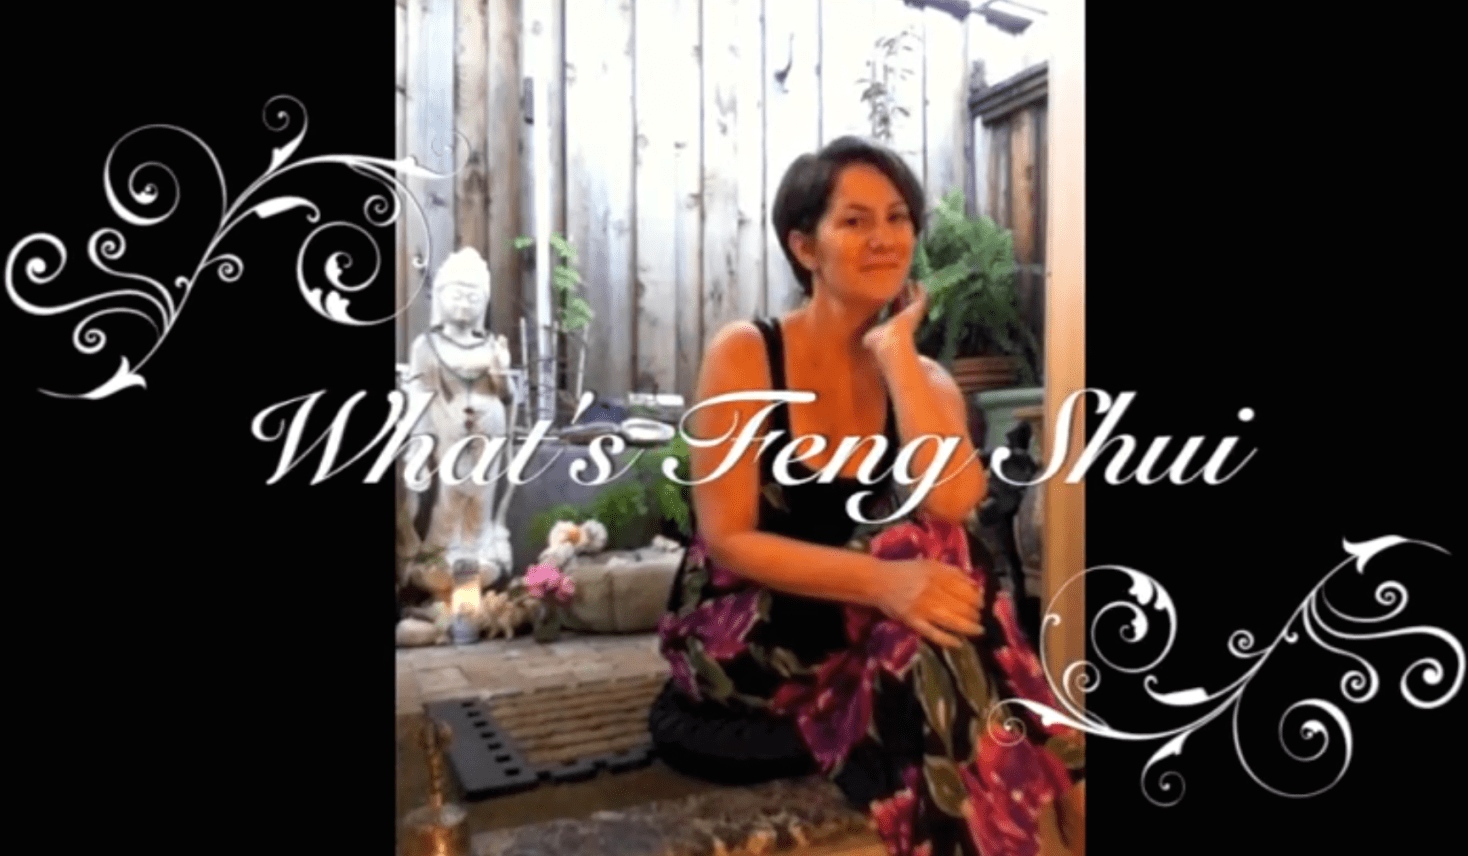 China Rose ~ What's Feng Shui? film project cover, circa 2012